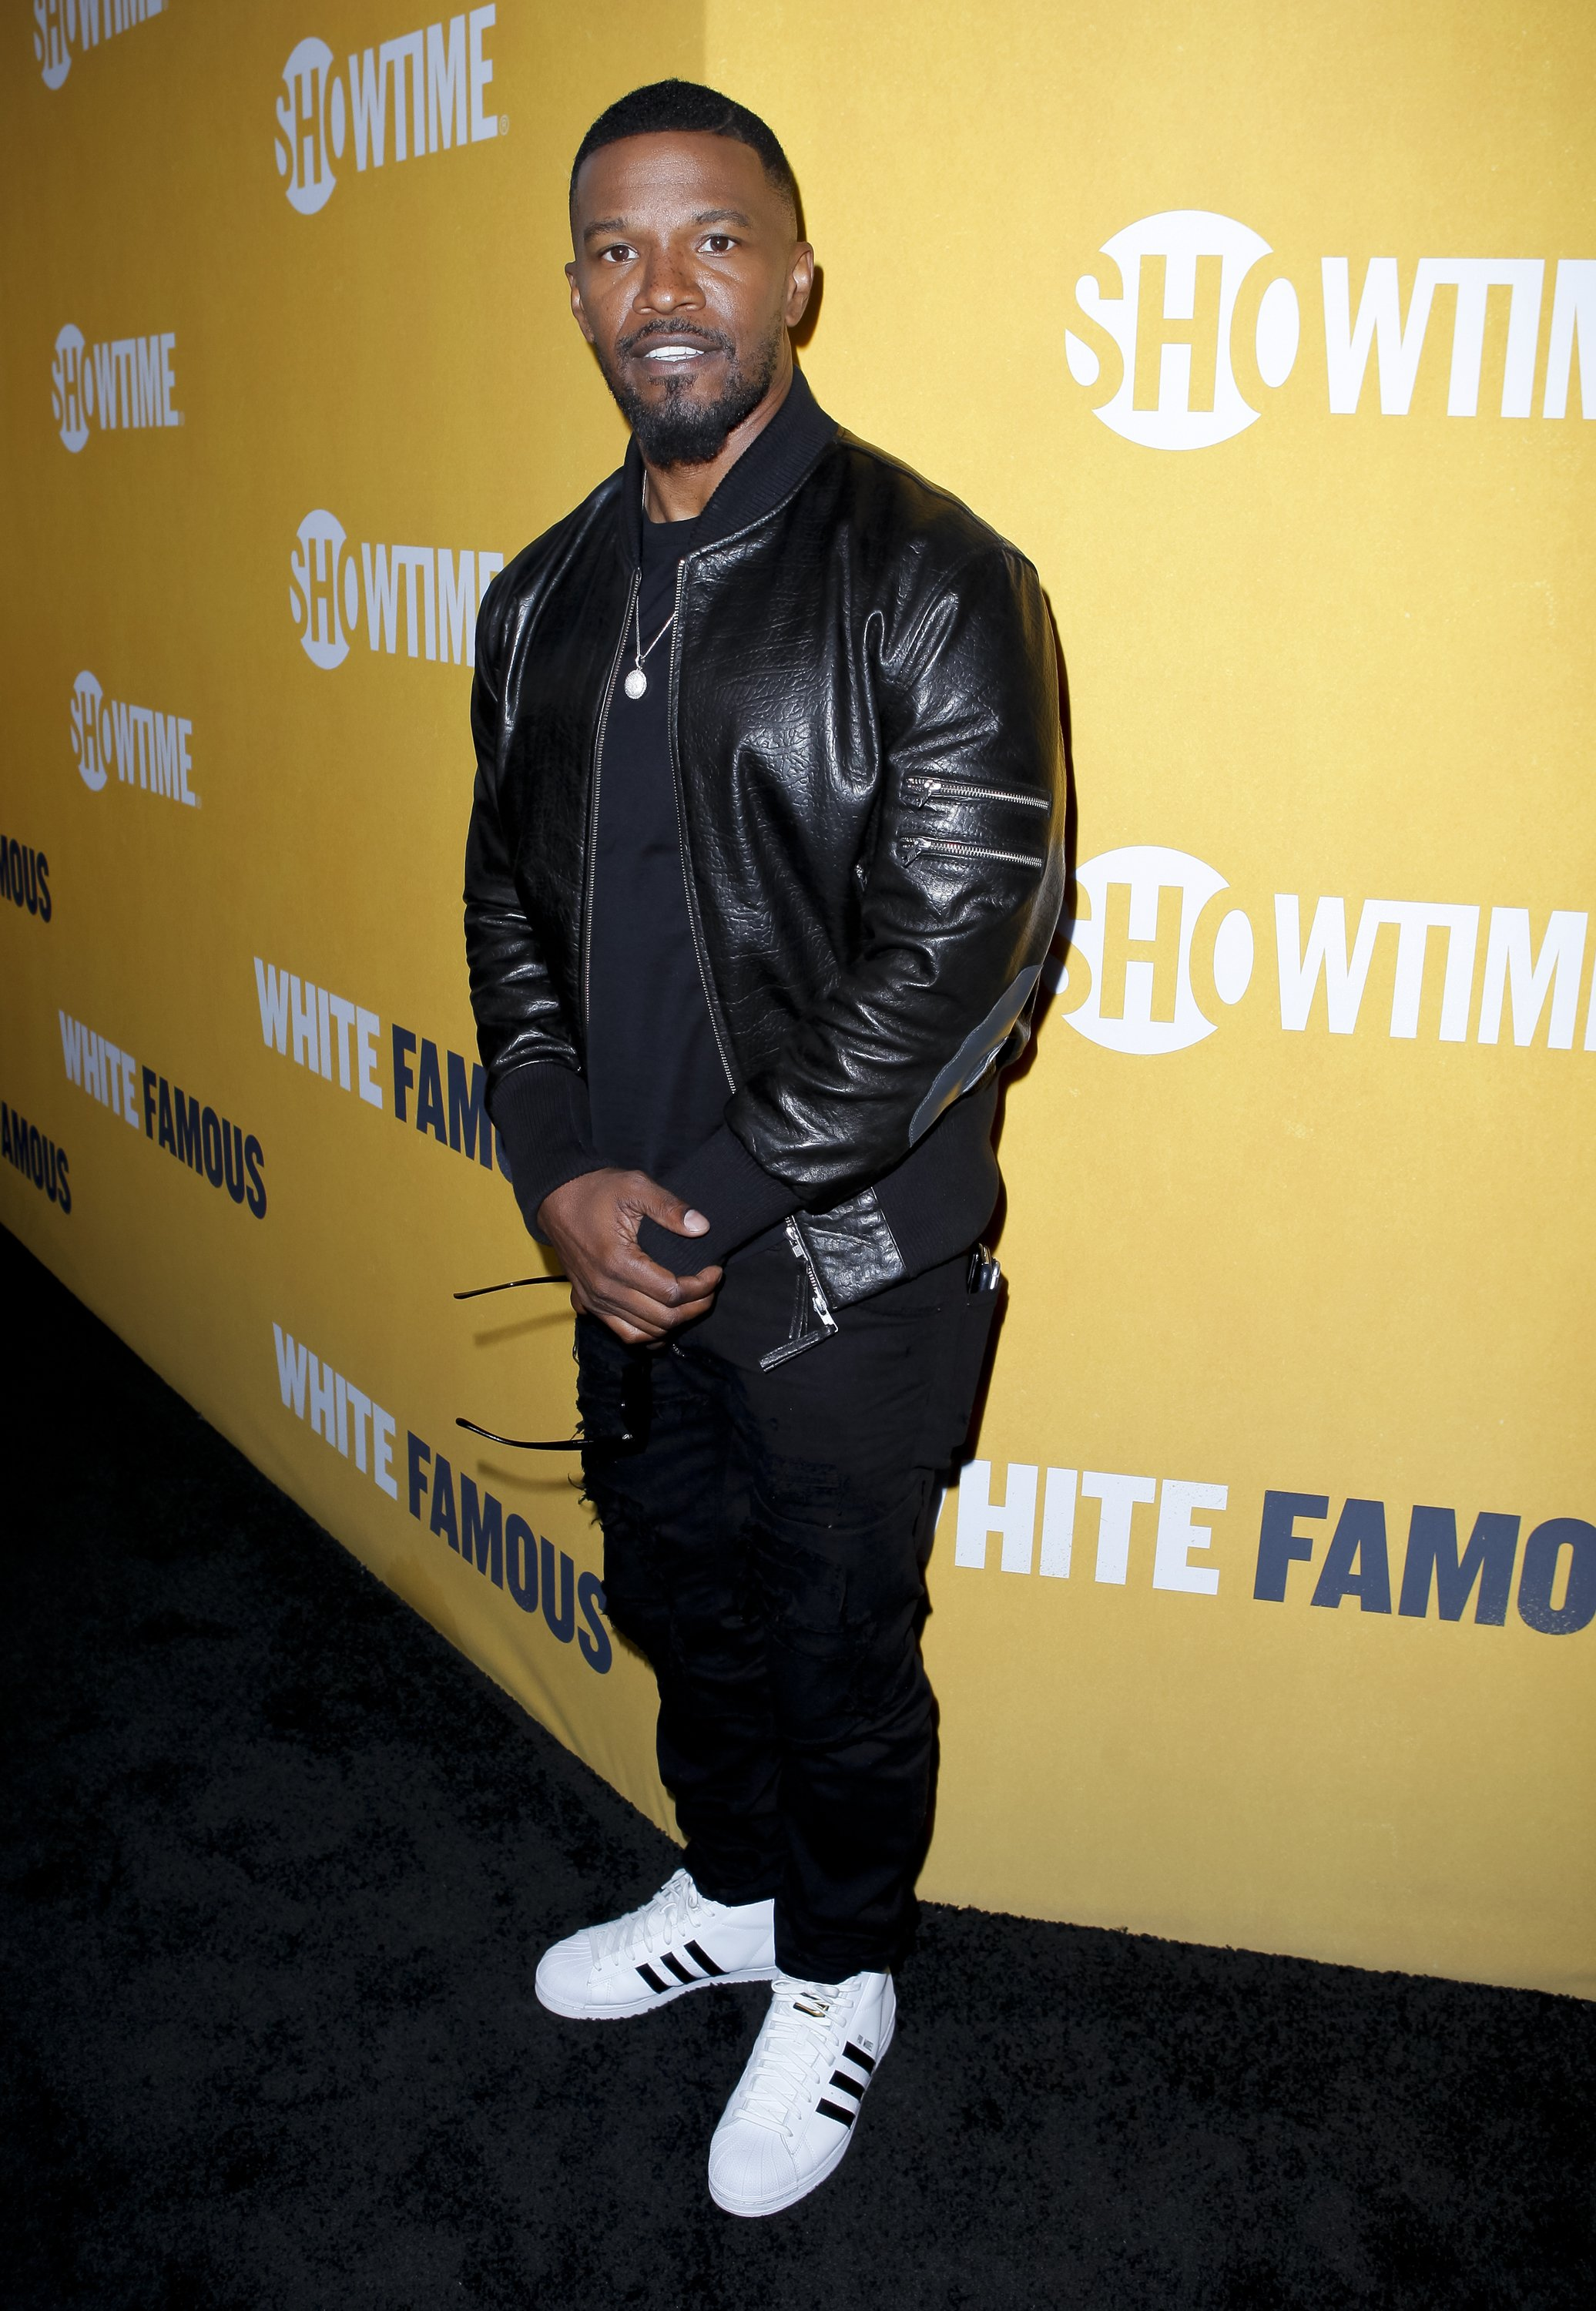 """Jamie Foxx attends the premiere of Showtime's """"White Famous"""" in West Hollywood, California on September 27, 2017 